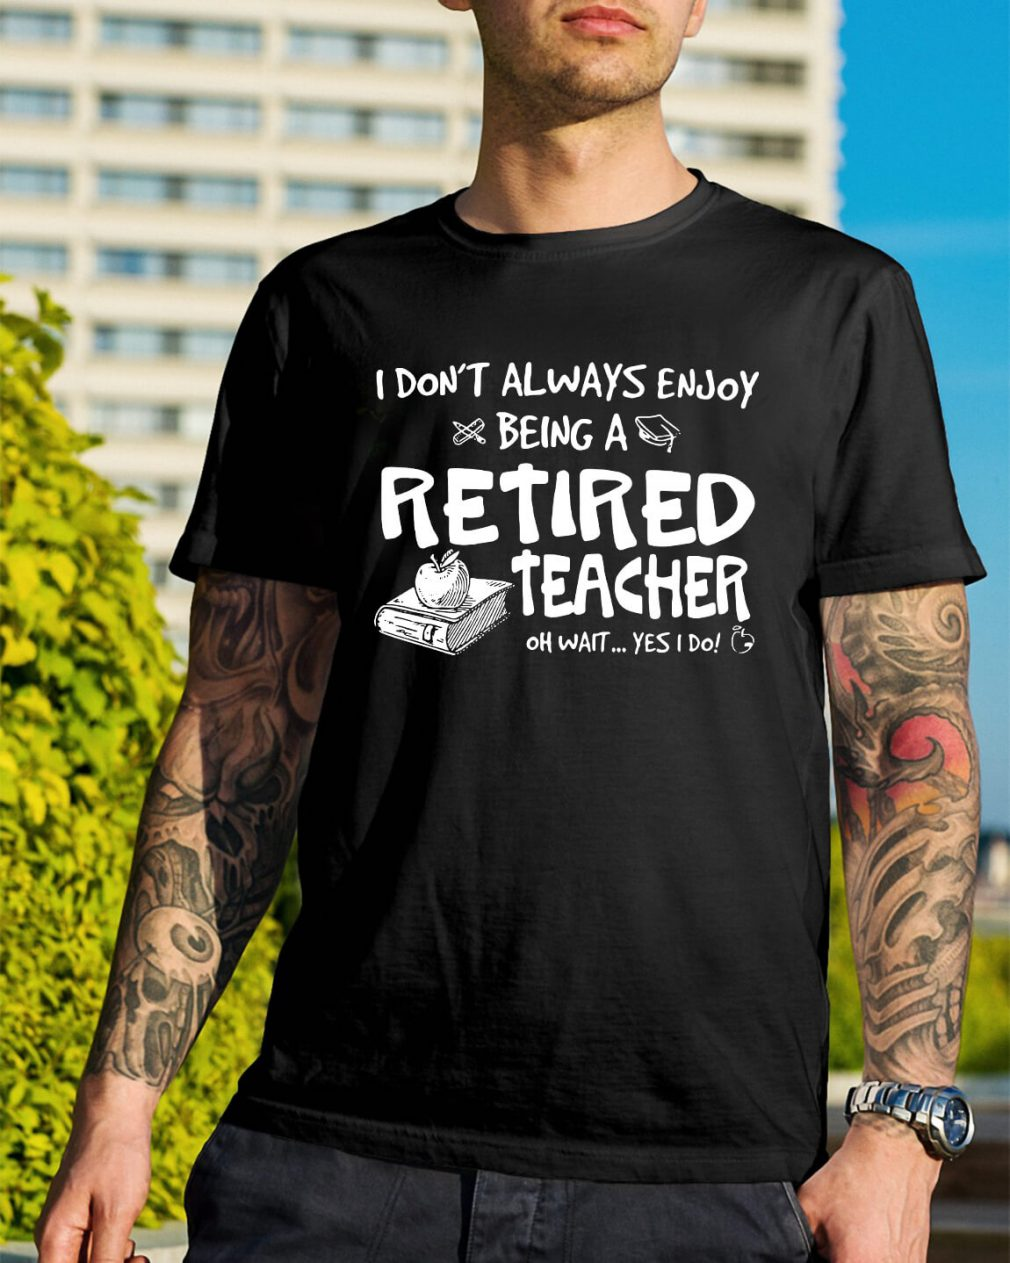 I don't always enjoy being a retired teacher oh wait yes I do shirt